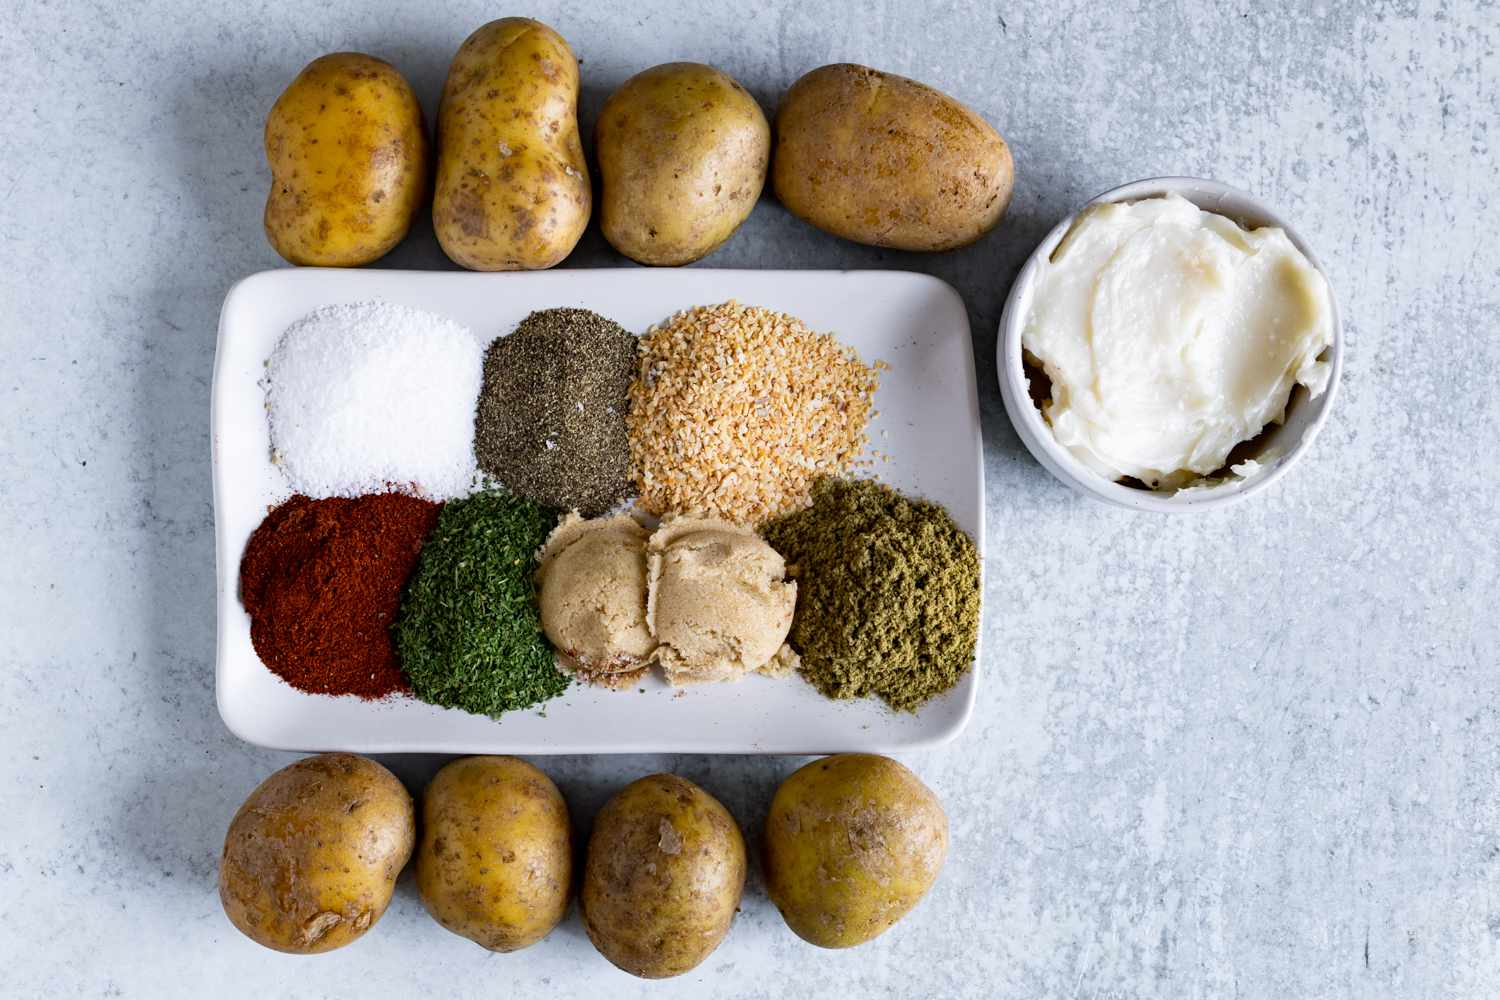 Ingredients for BBQ smoked baked potatoes